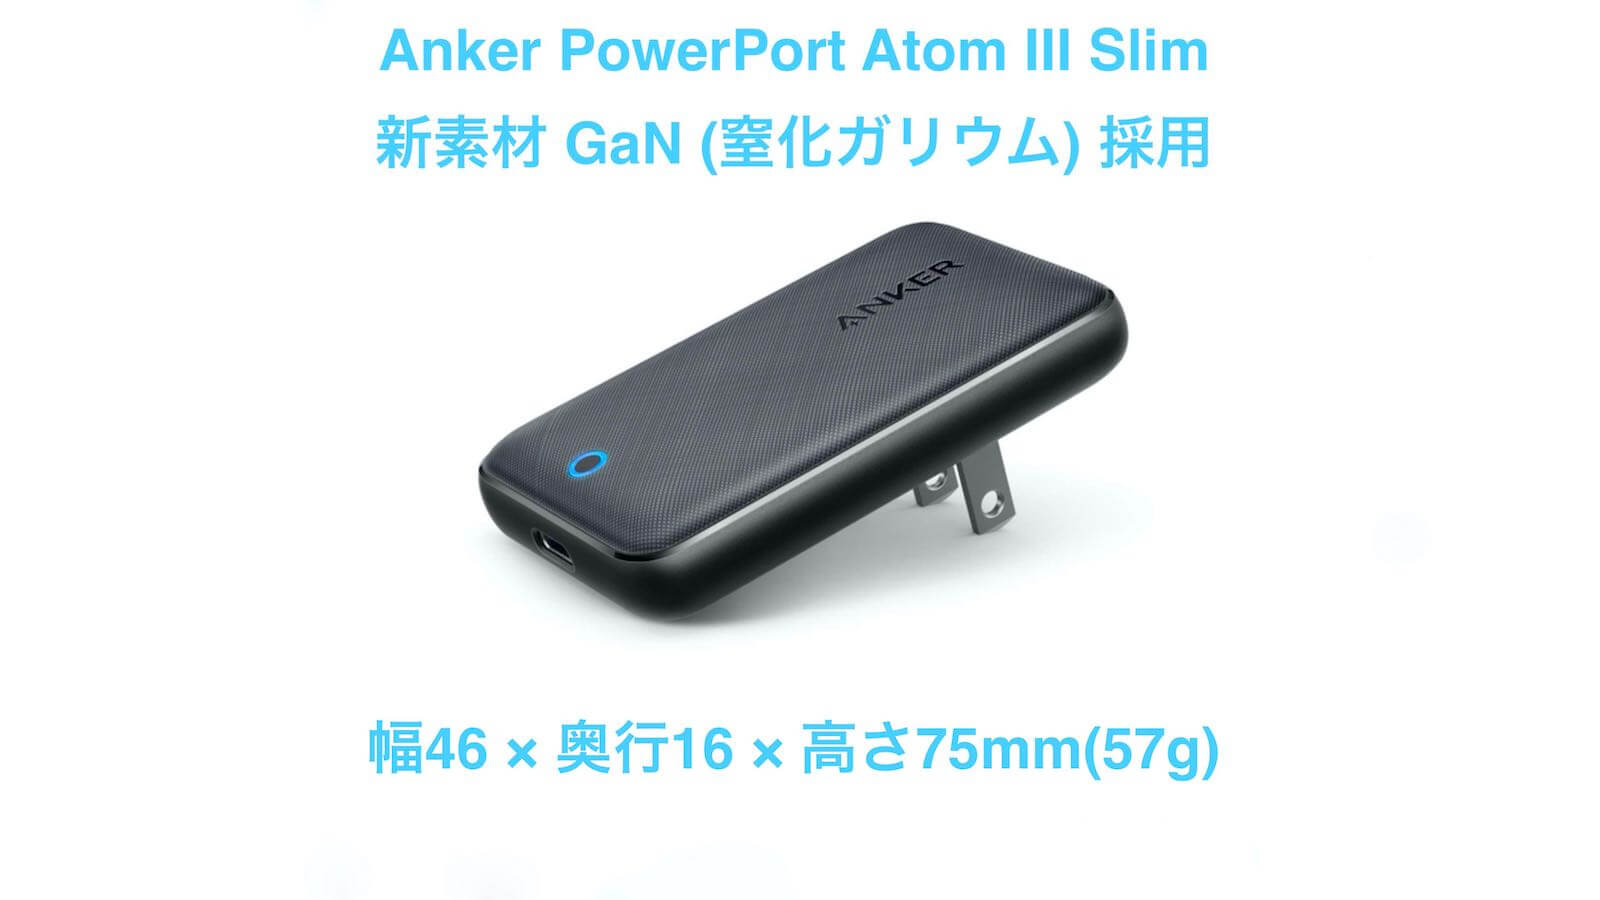 0219 Anker PowerPort III mini review 06